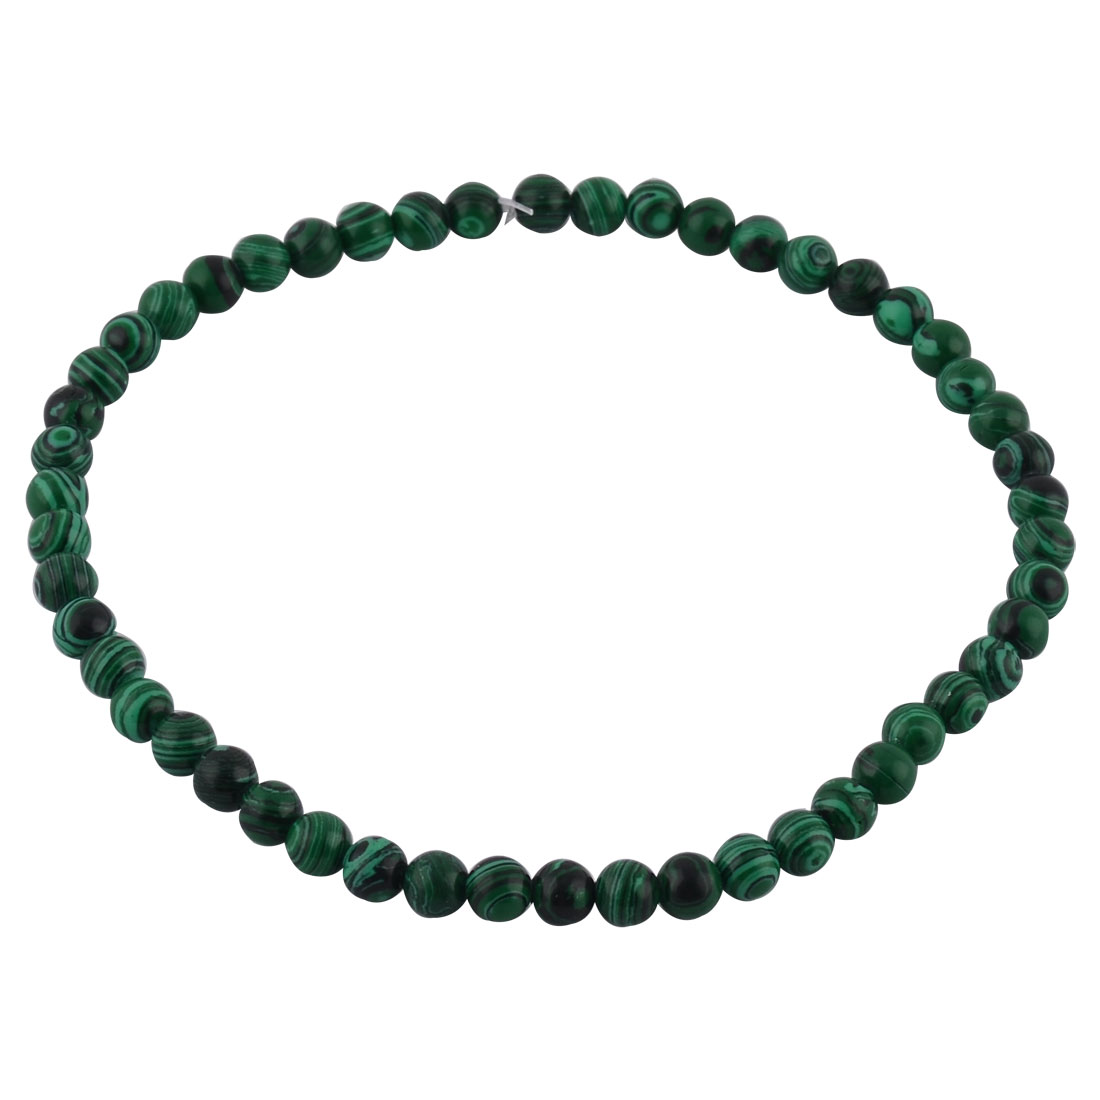 Malachite Design DIY Necklace Bracelet Beading Beads Strand 8mm Dia